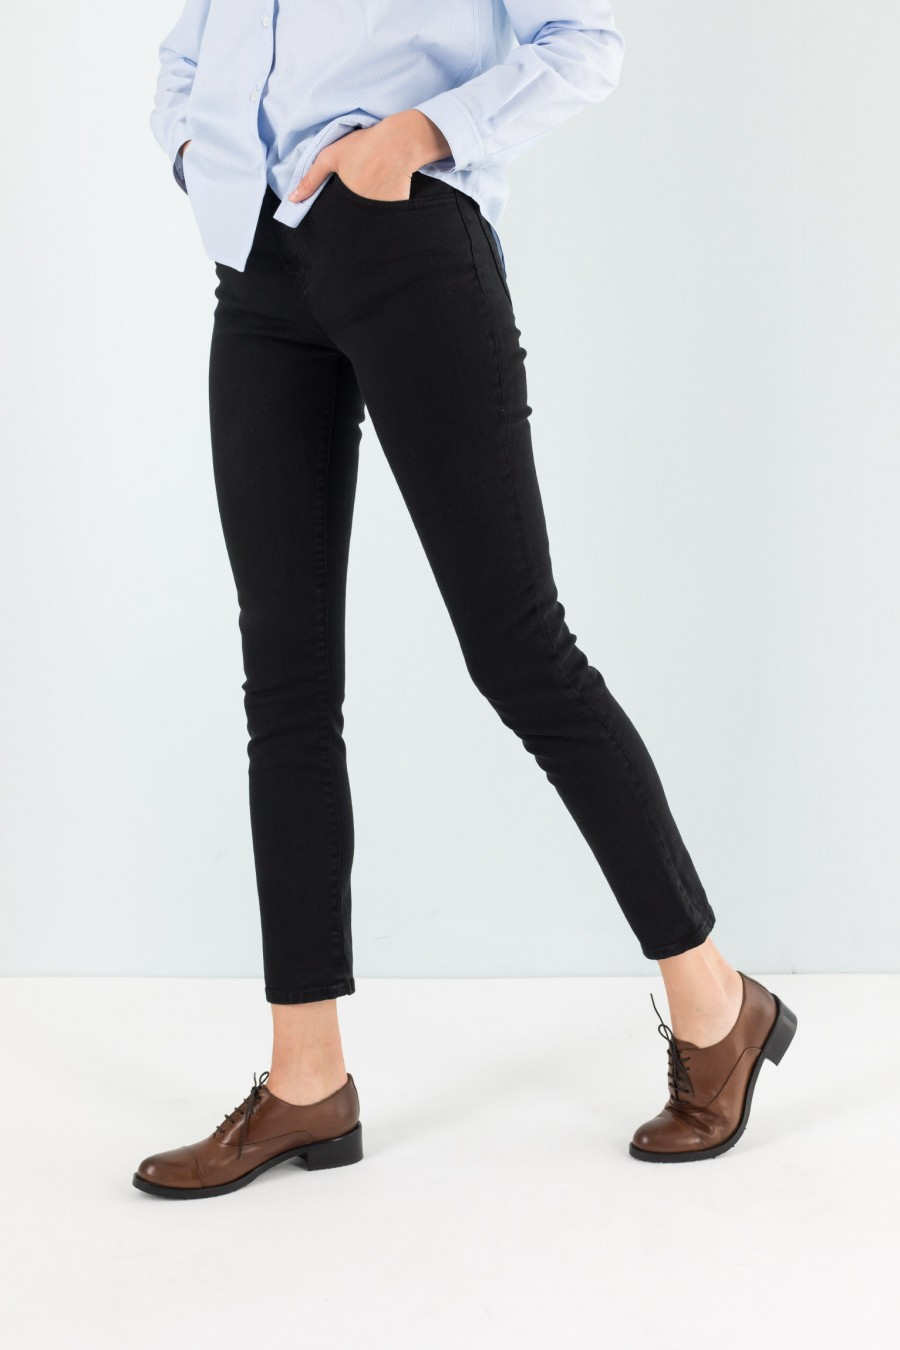 Black figure hugging jeans